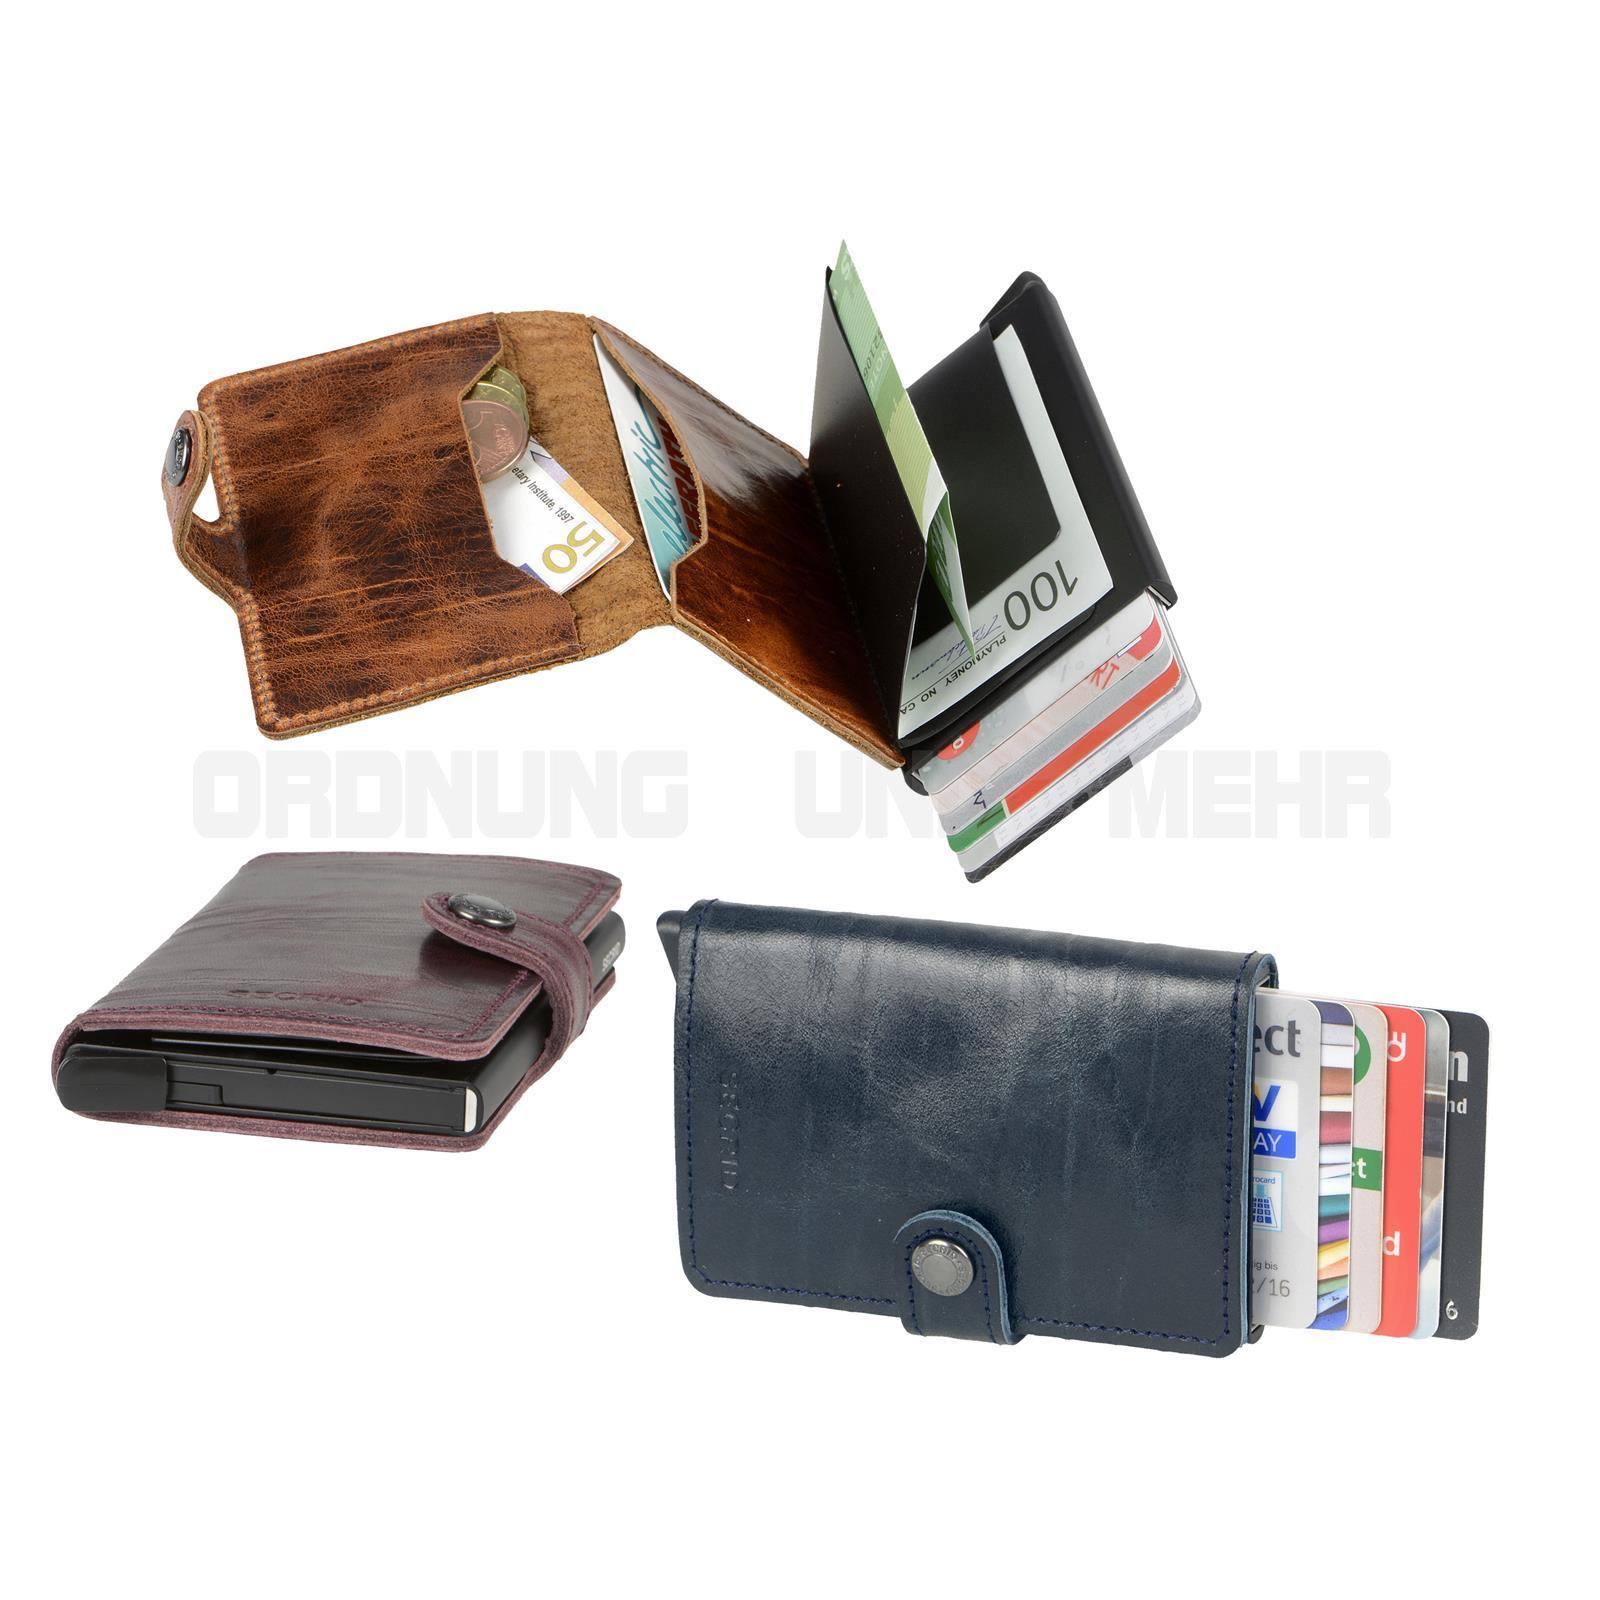 Neue SECRID Miniwallets in DUTCH MARTIN Leder